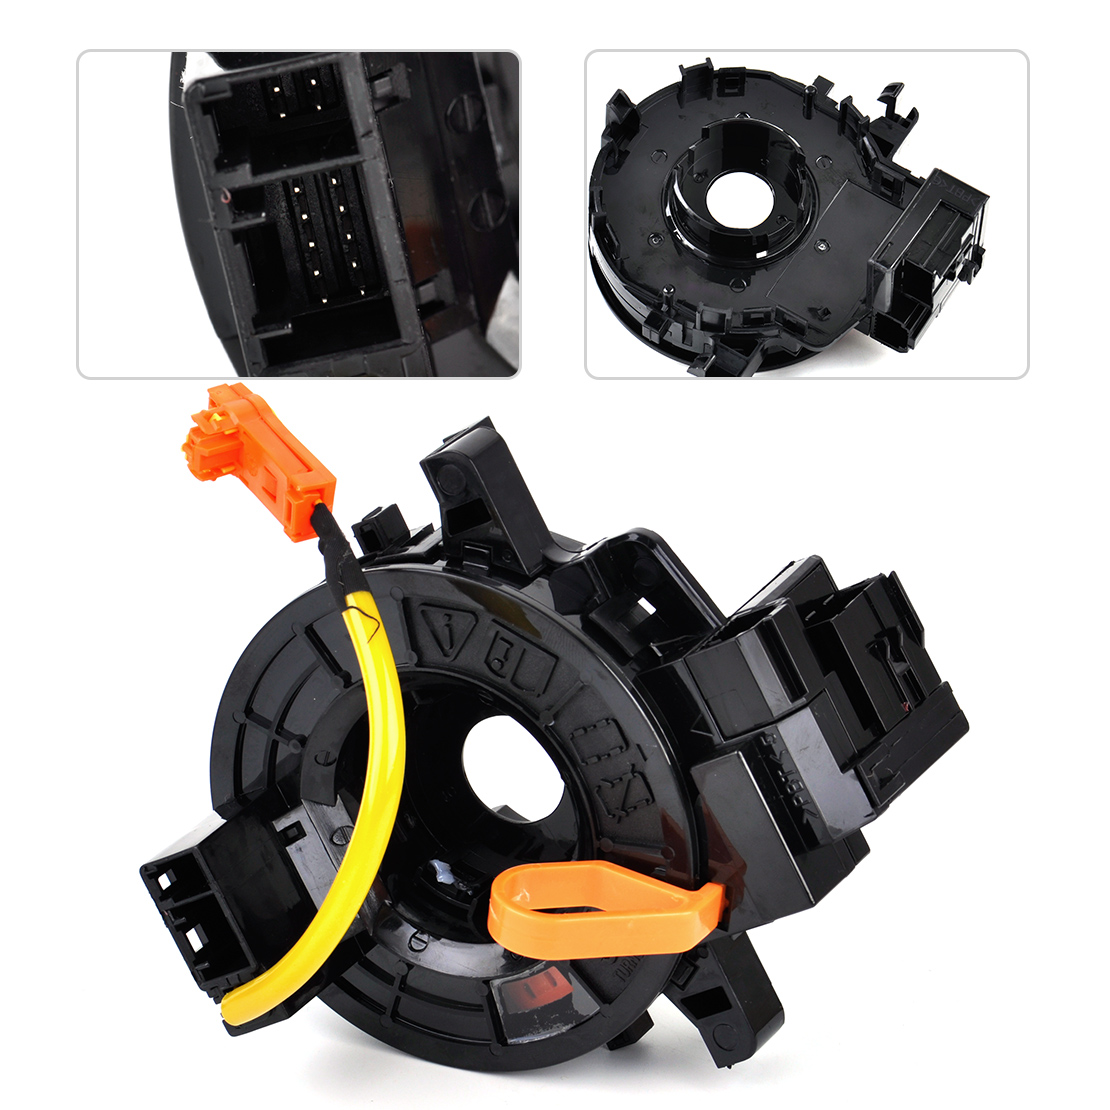 Clock Spring Airbag Spiral Cable For Toyota Hilux Innova